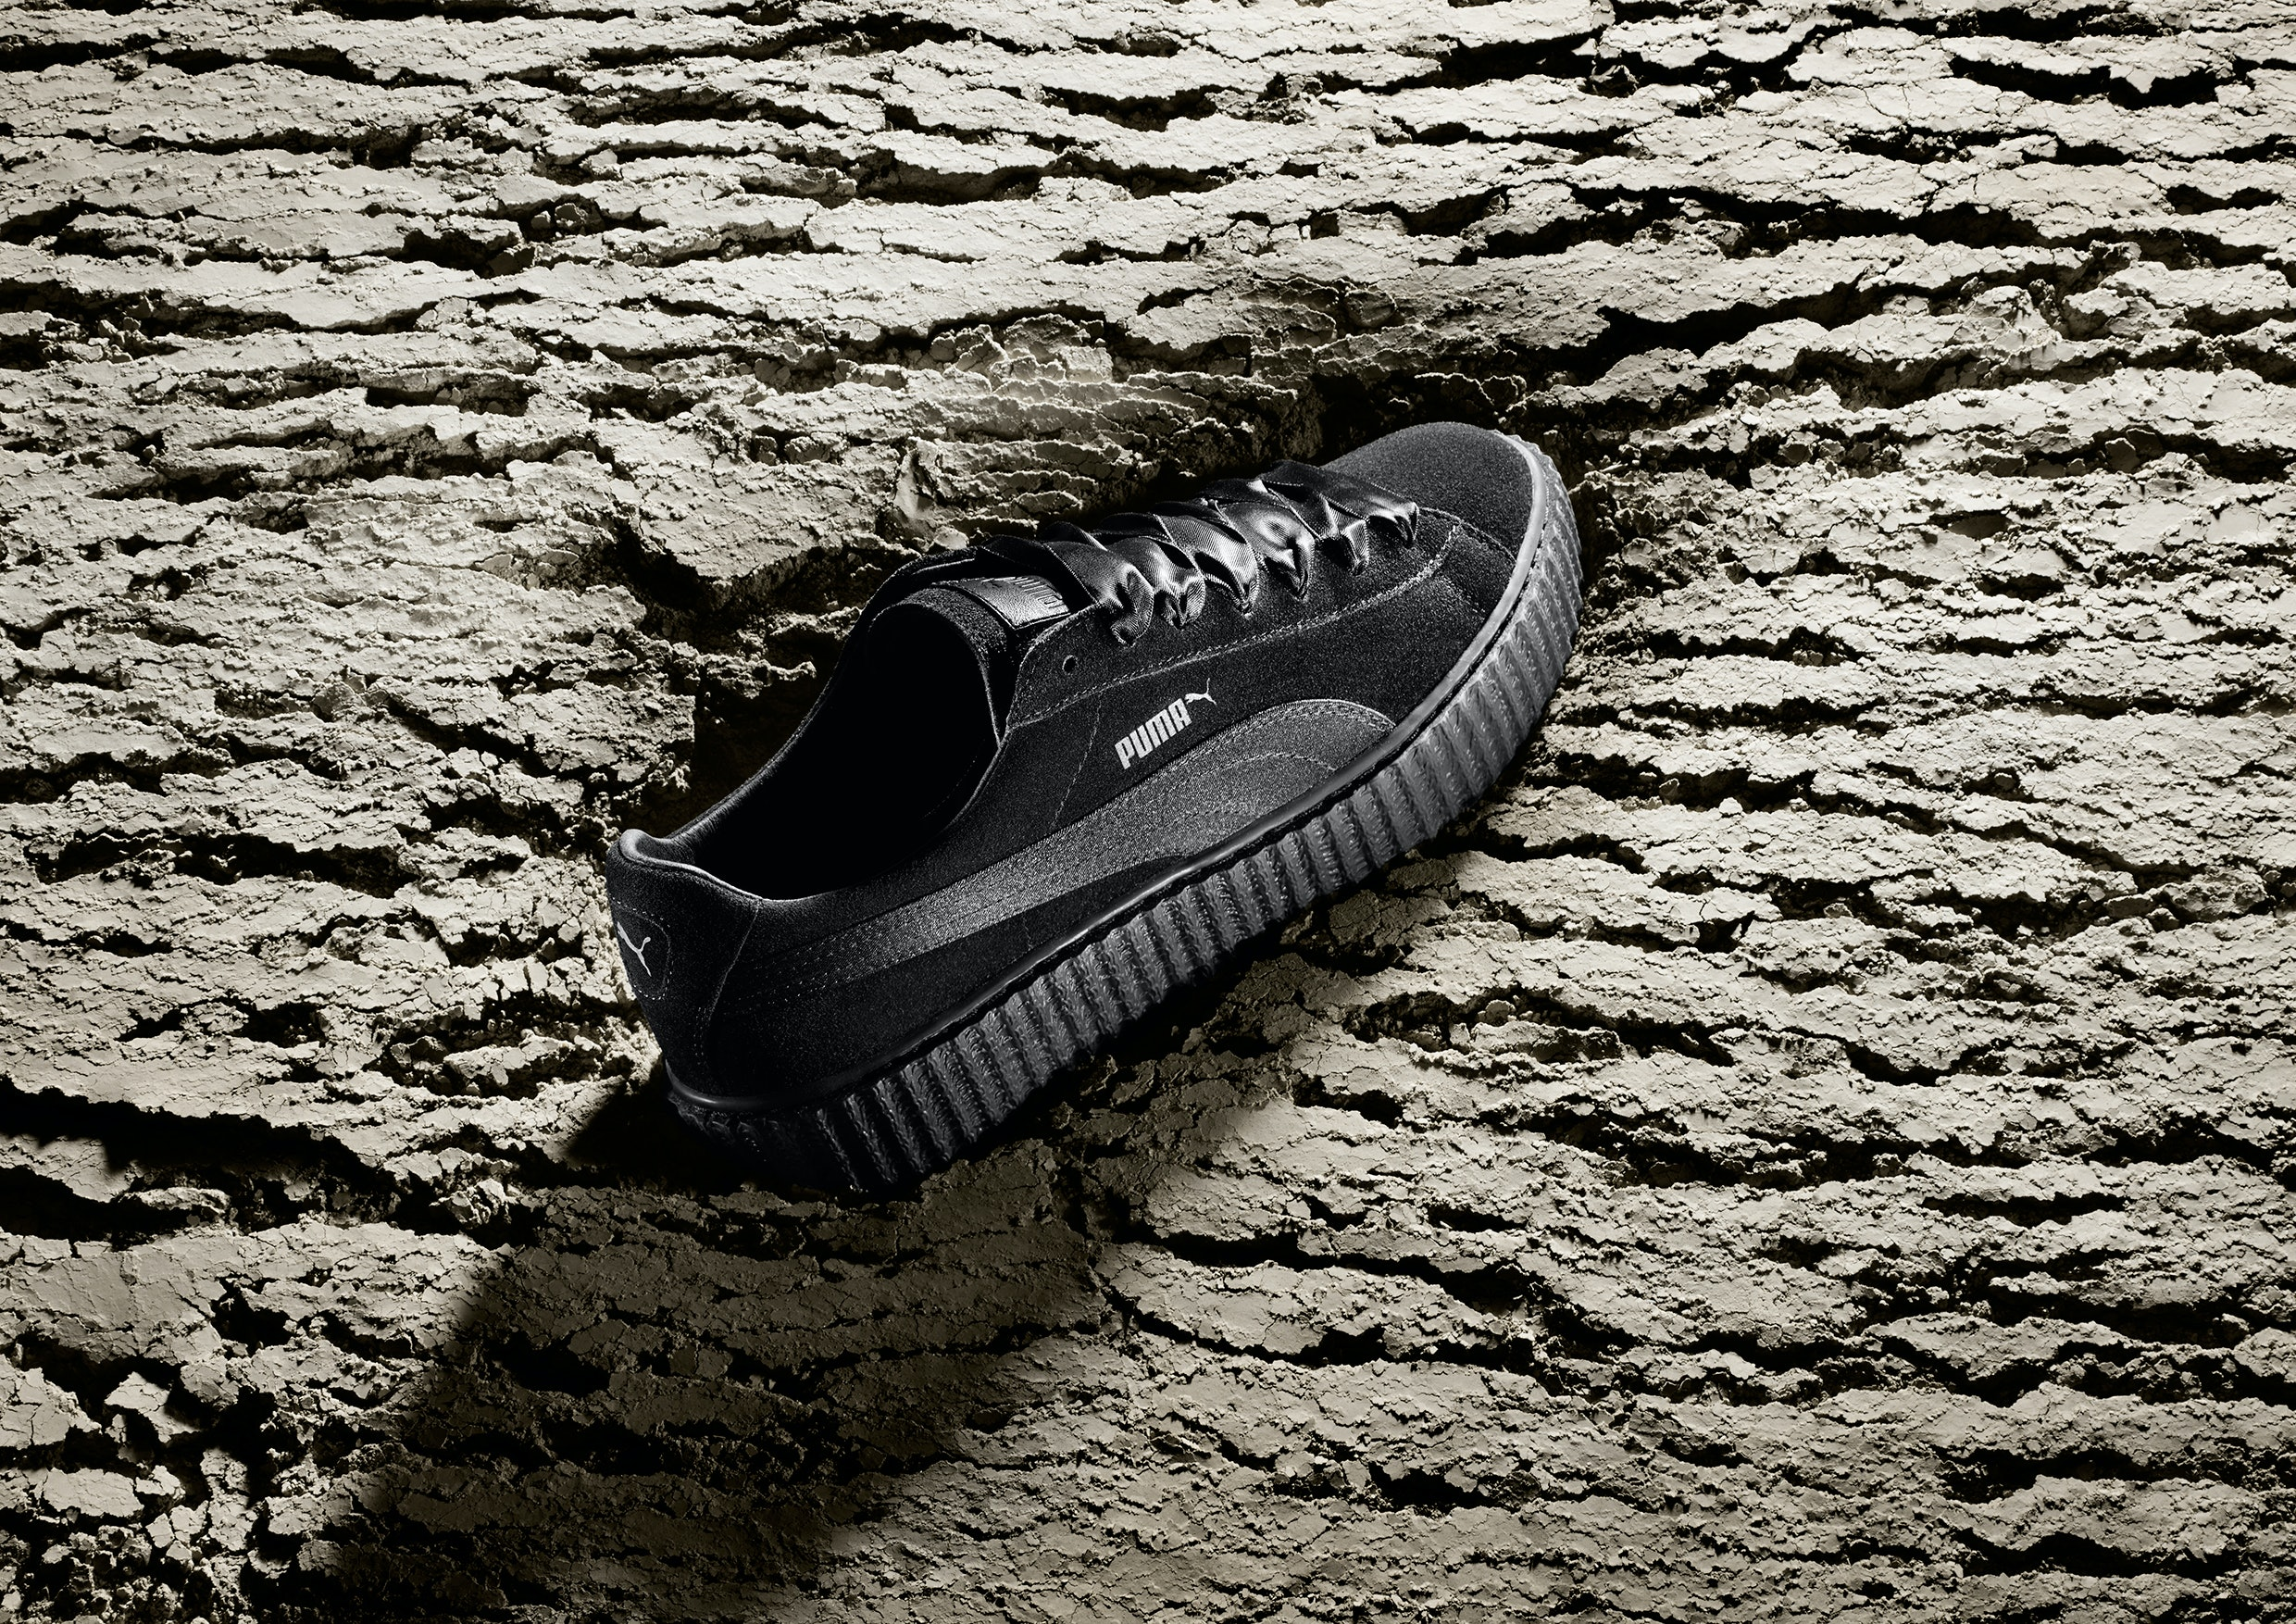 You Creepers To Wear Never That Probably Puma One Rihanna's Way The HqYF8xSw